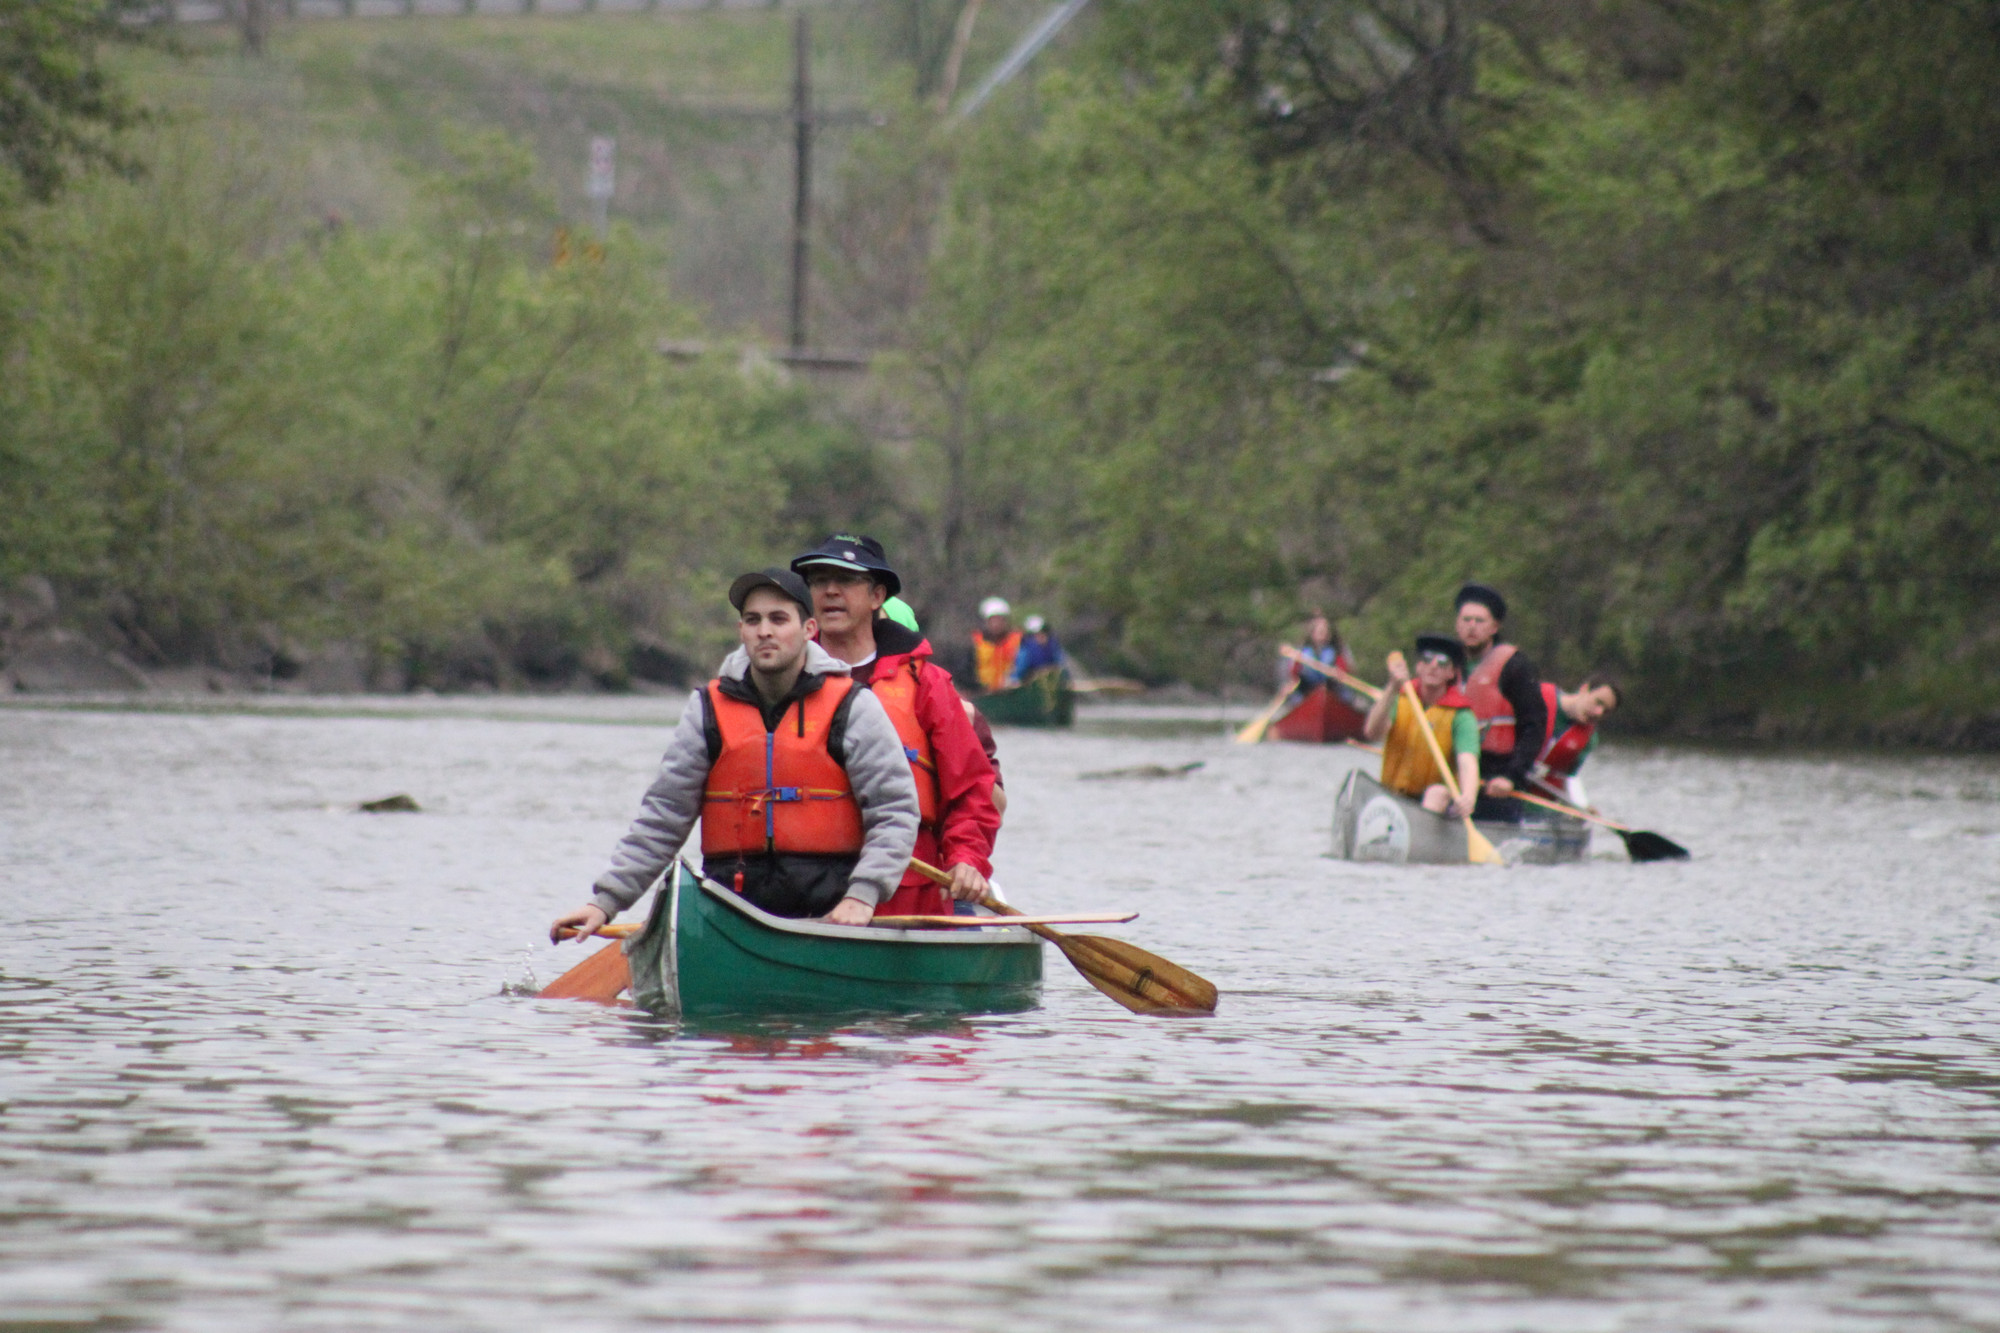 People in canoes paddling down a river